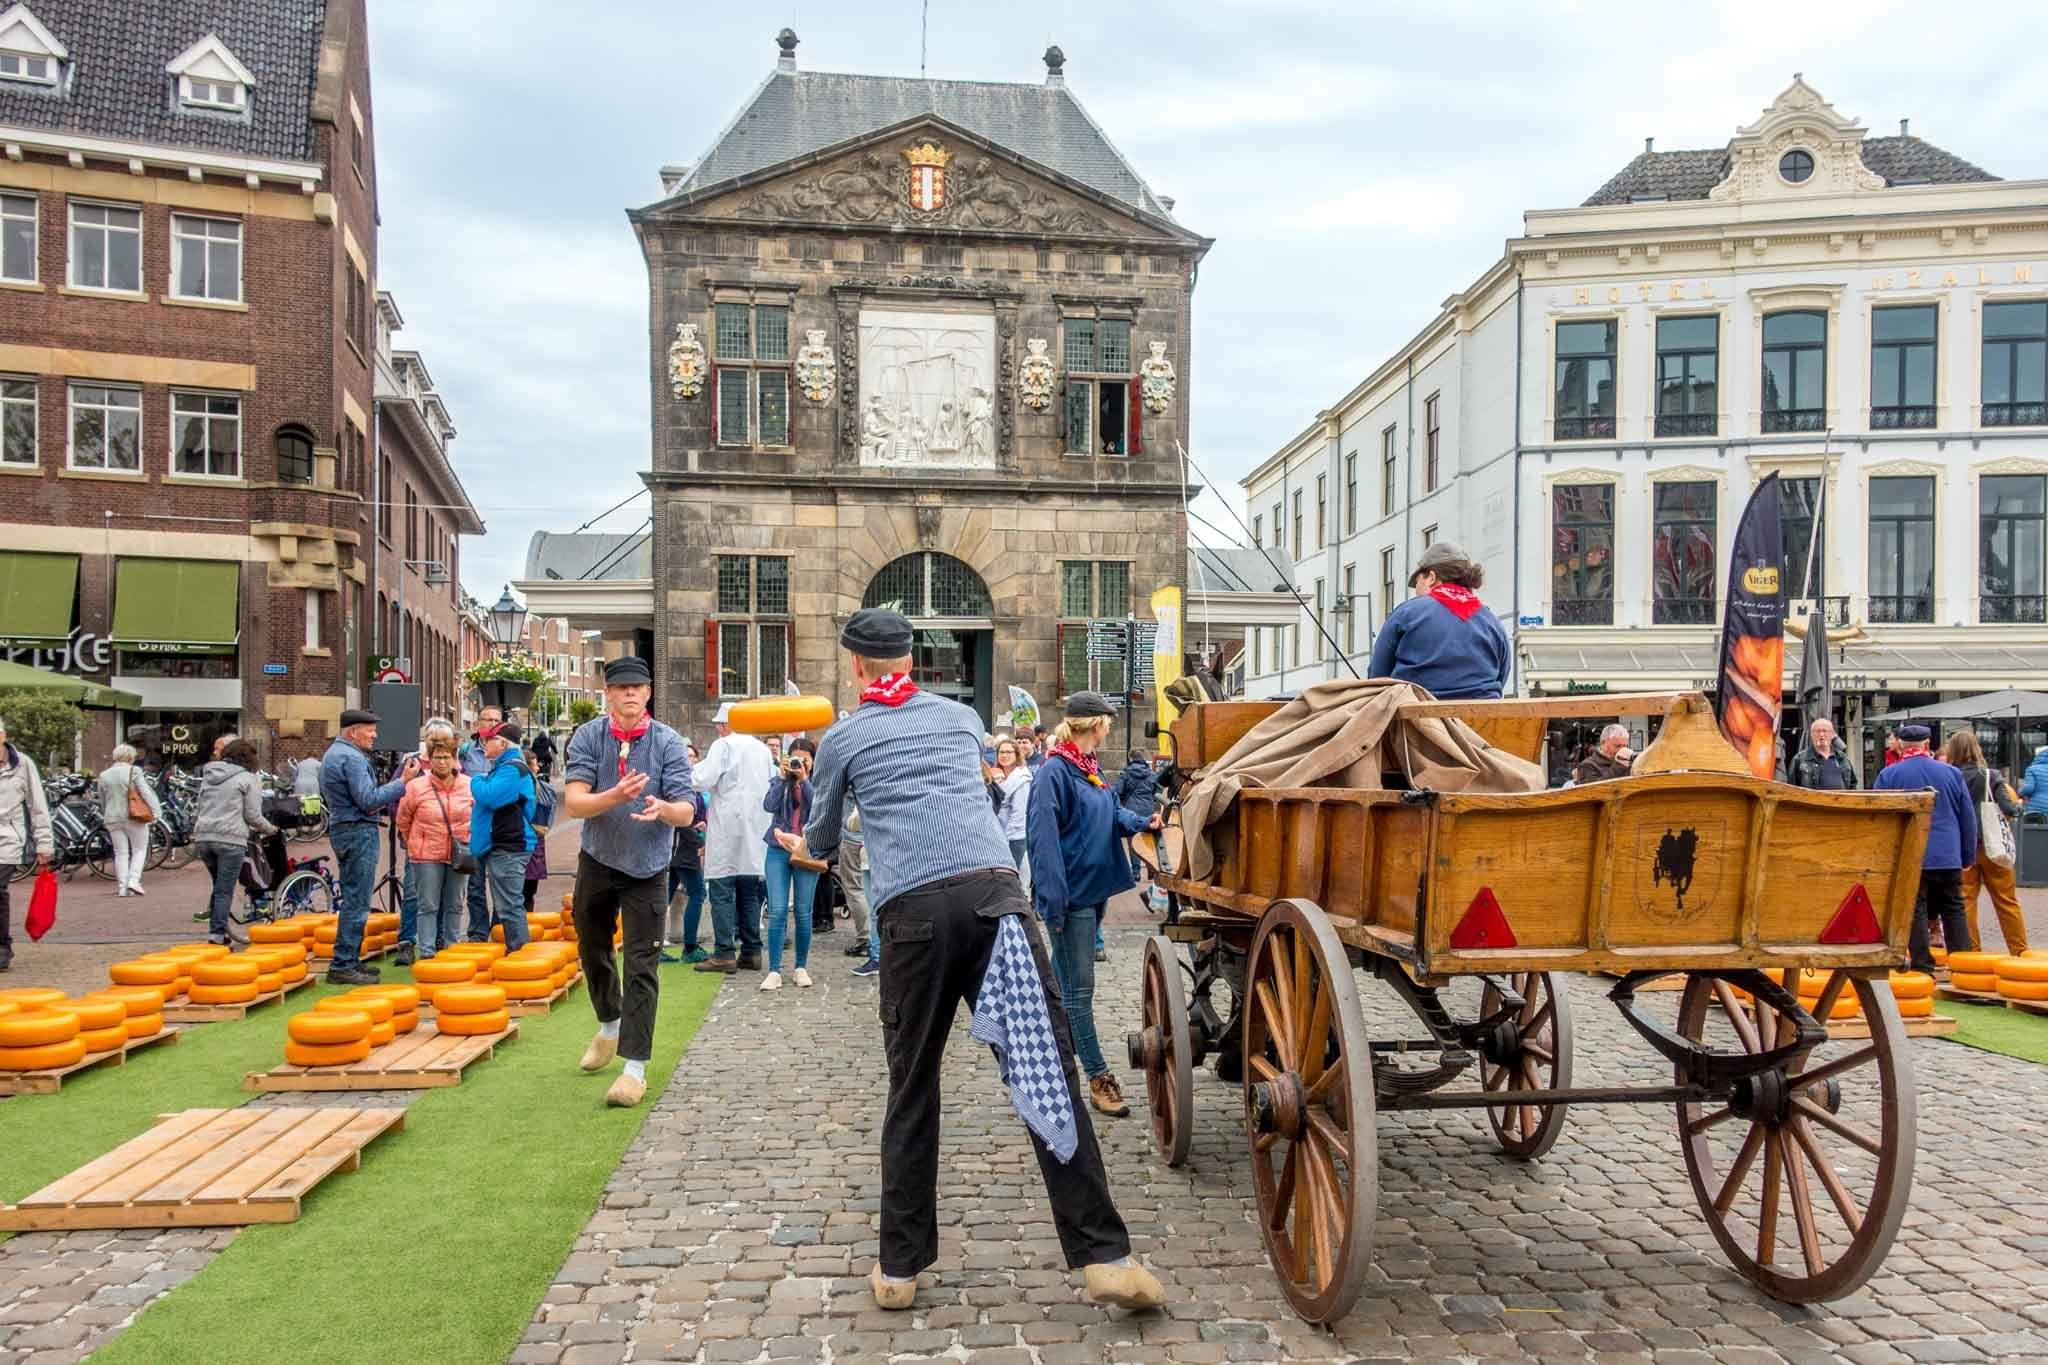 Thursday mornings in the spring and summer, the area around town hall fills with the Gouda Cheese Market, a market re-enacting the sale of the town's namesake cheese